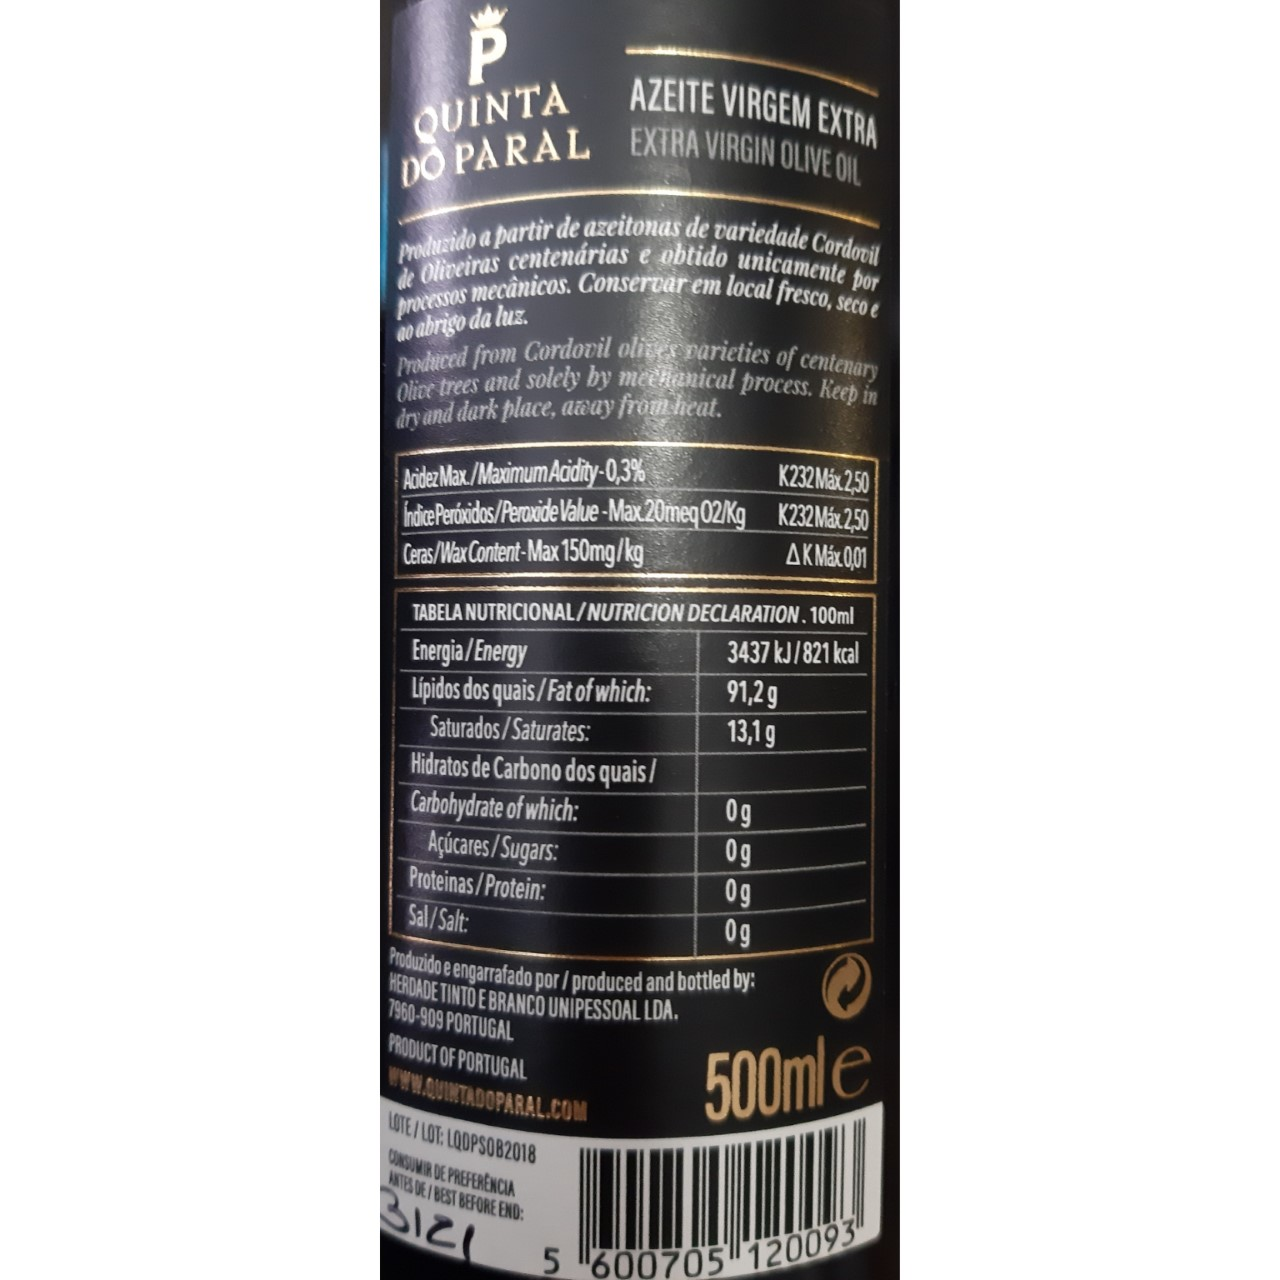 Quinta do Paral Azeite Virgem Extra 500ml (GWD)